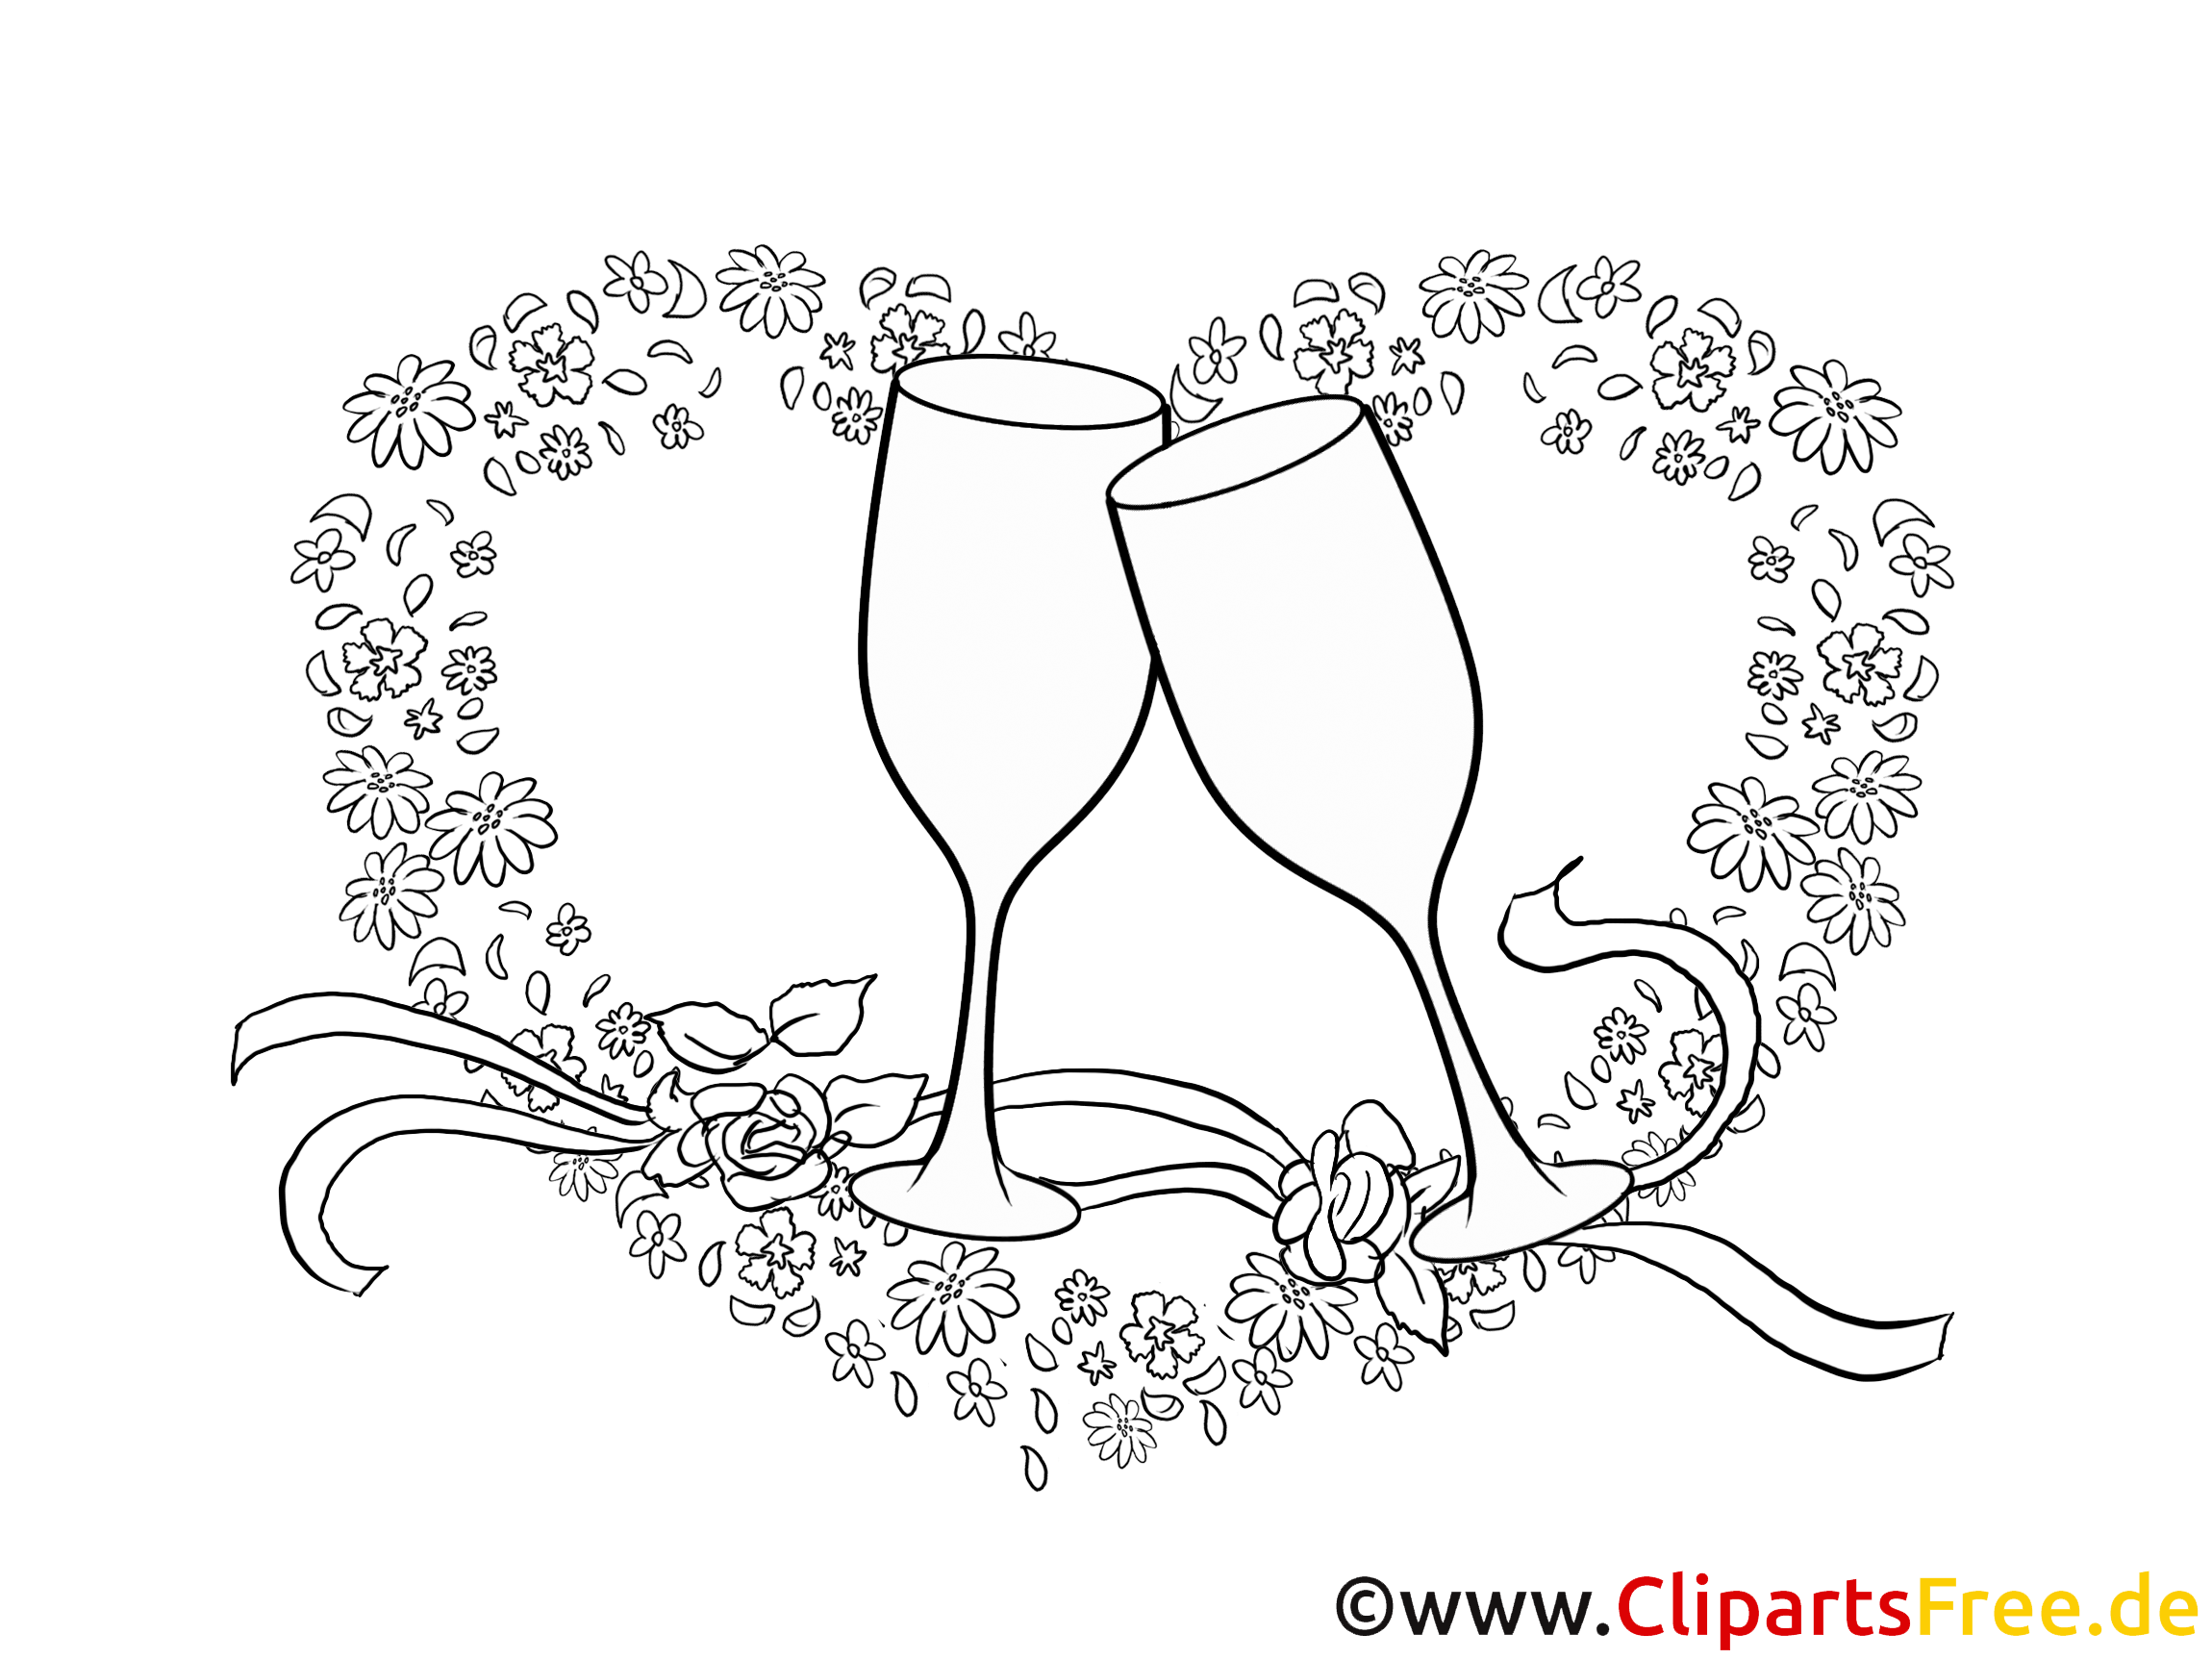 coeur clip art imprimer mariage dessin mariage dessin picture image graphic clip art. Black Bedroom Furniture Sets. Home Design Ideas